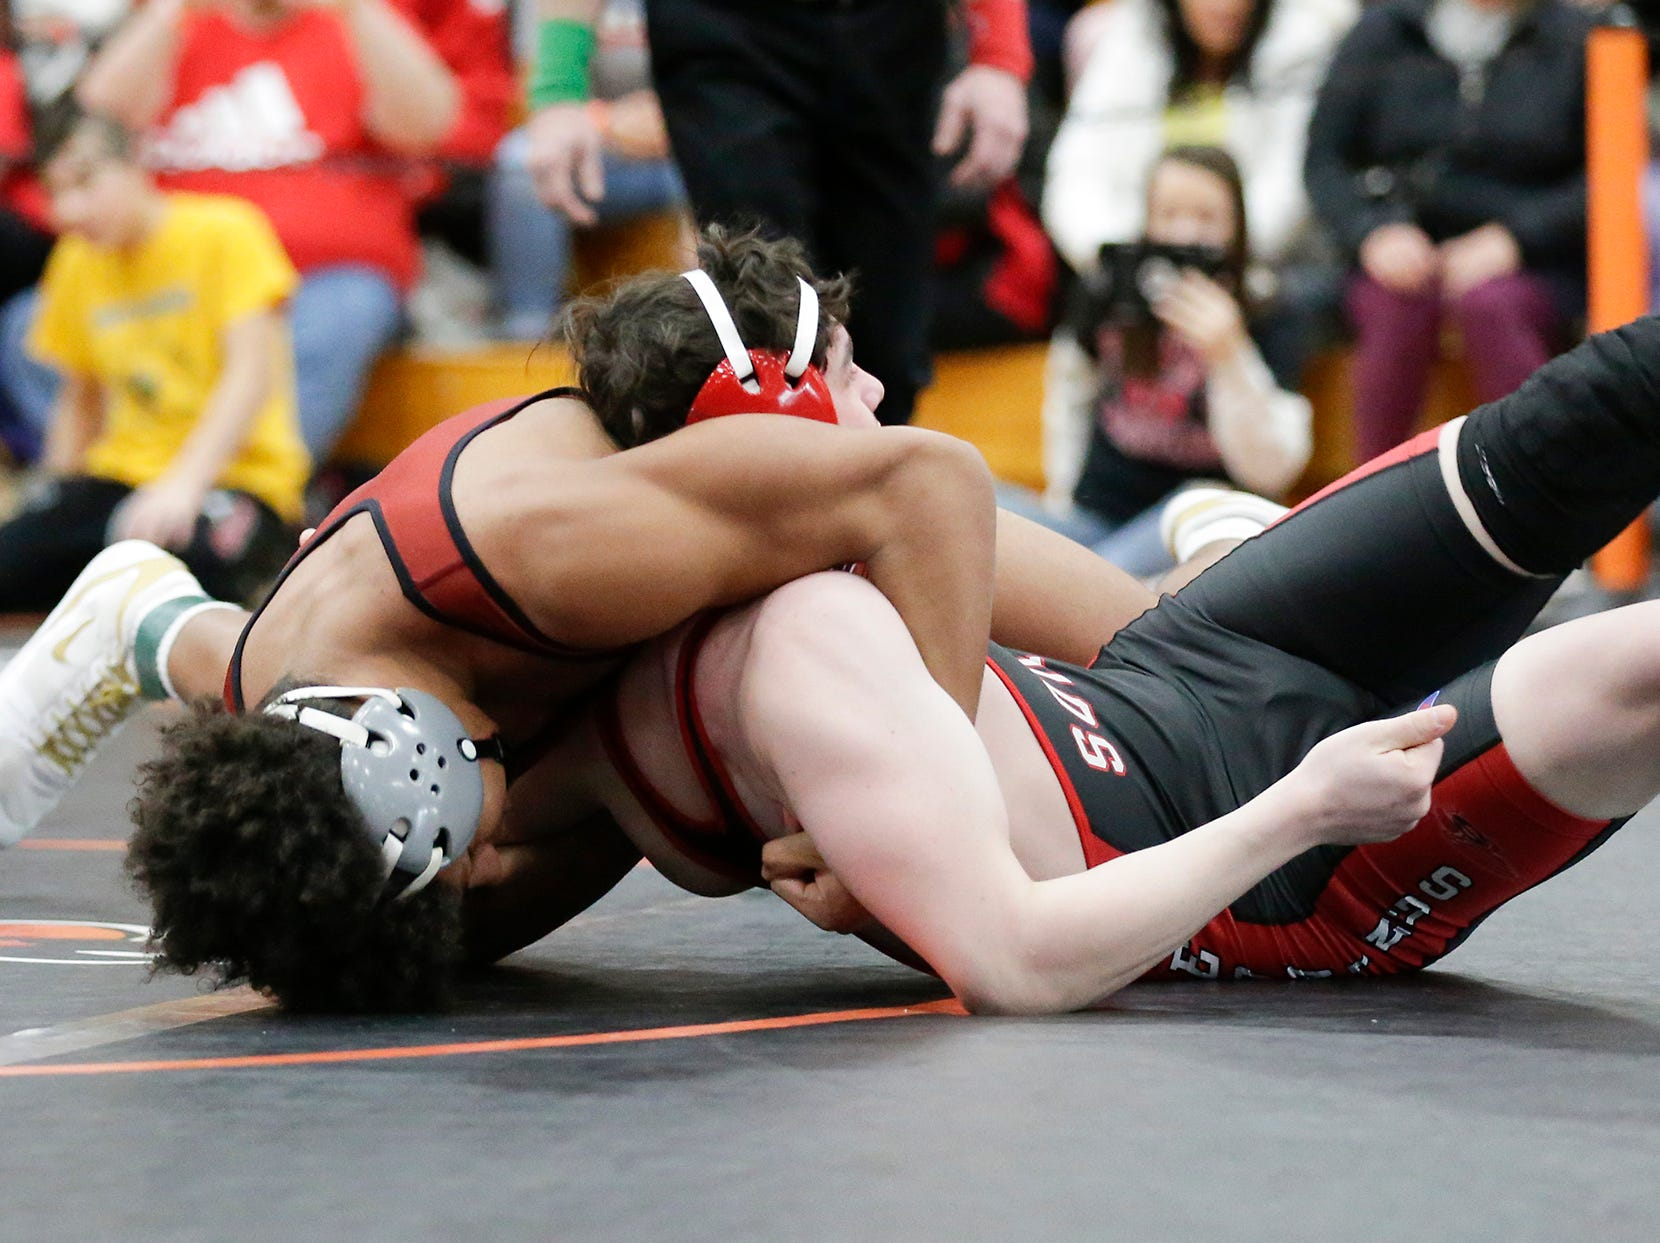 Braelon Allen of Fond du Lac High School wrestles Aden Katz of Sheboygan South High School in the 182 pound weight class during the WIAA sectionals Saturday, February 16, 2019 in Hartford, Wis. Allen won with a pin in 10 seconds. Doug Raflik/USA TODAY NETWORK-Wisconsin